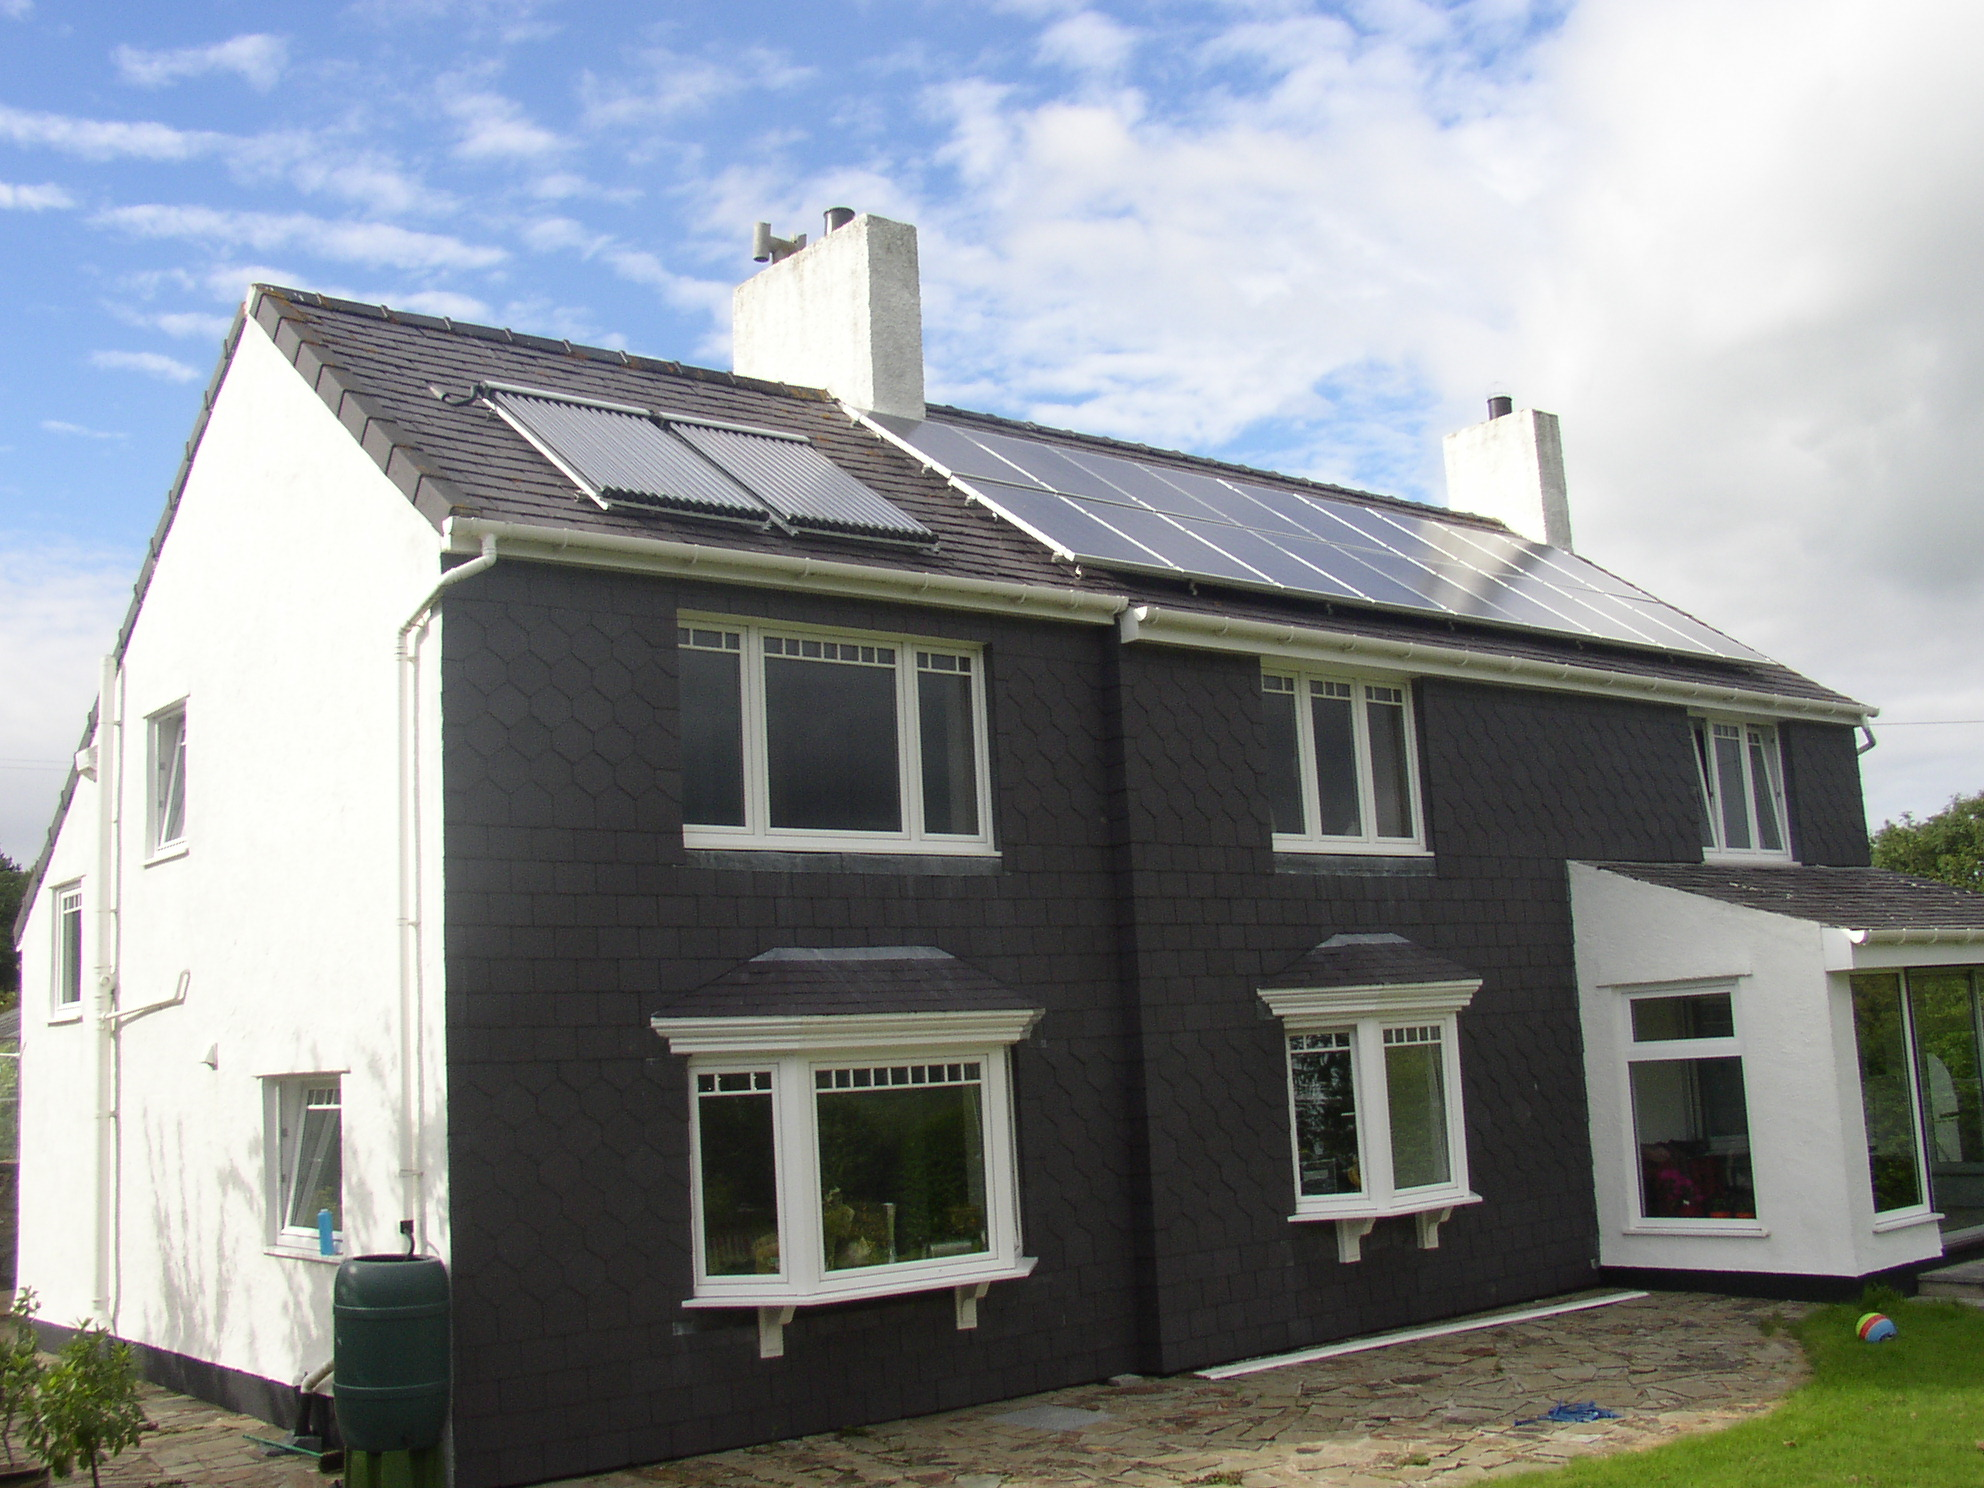 4 kW PV array in Ynys Mon